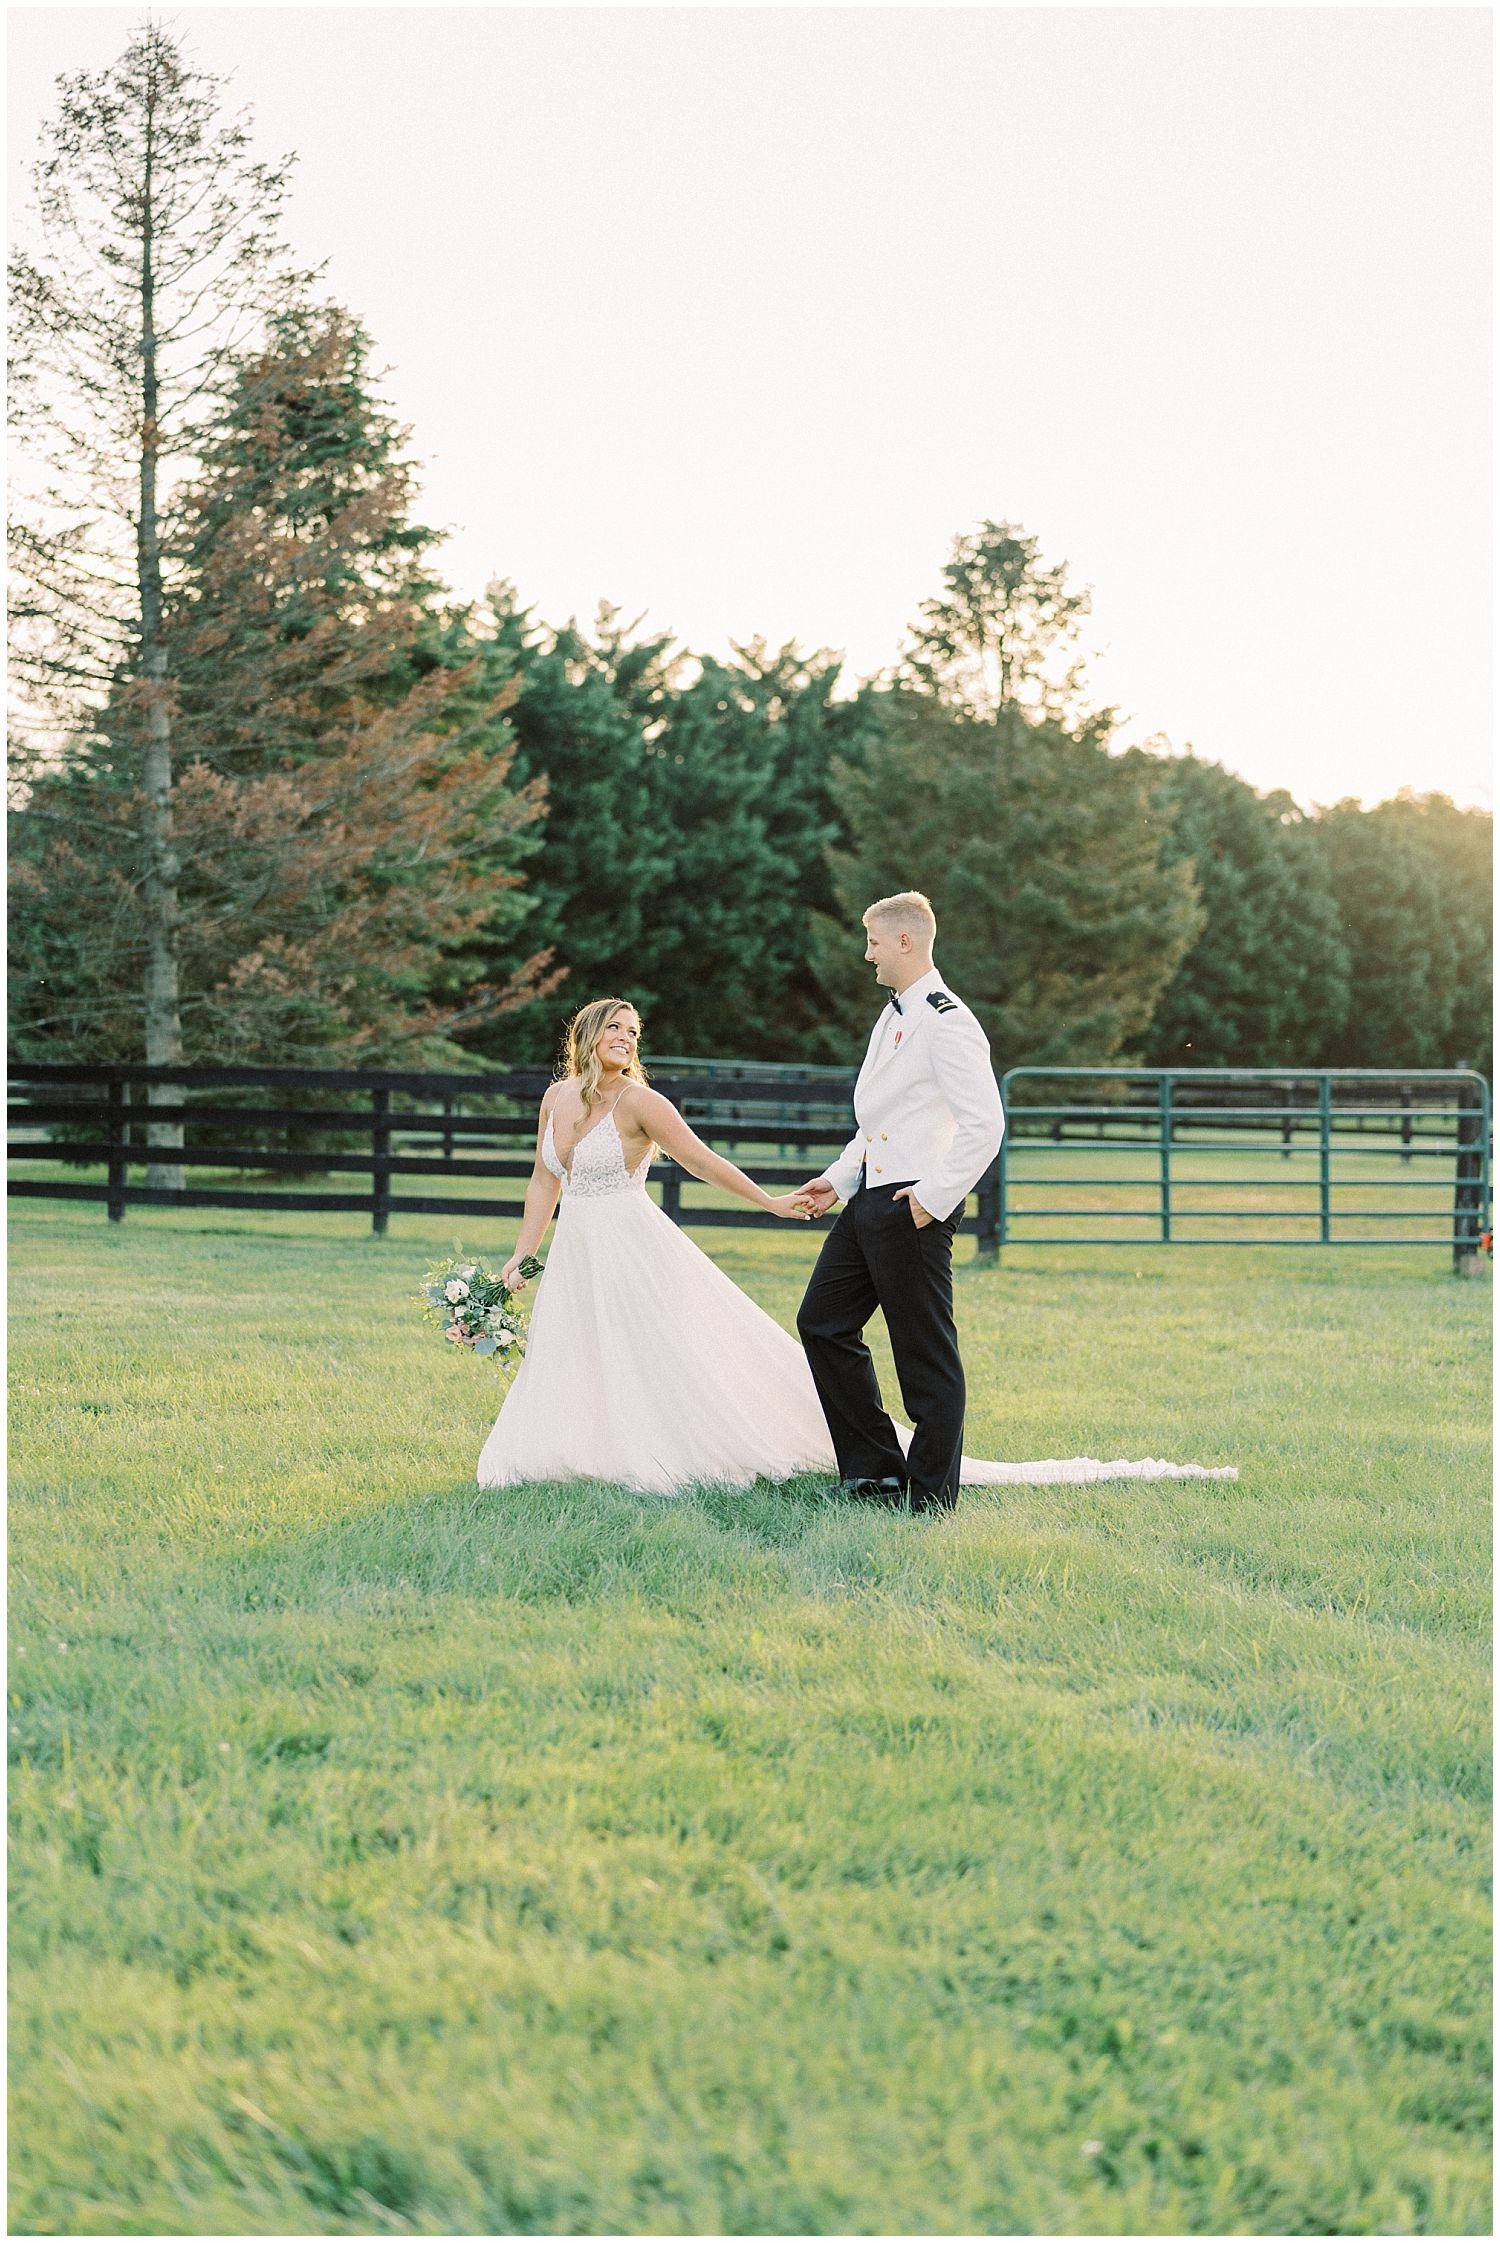 Bride and groom portraits at 8 Chains North Winery